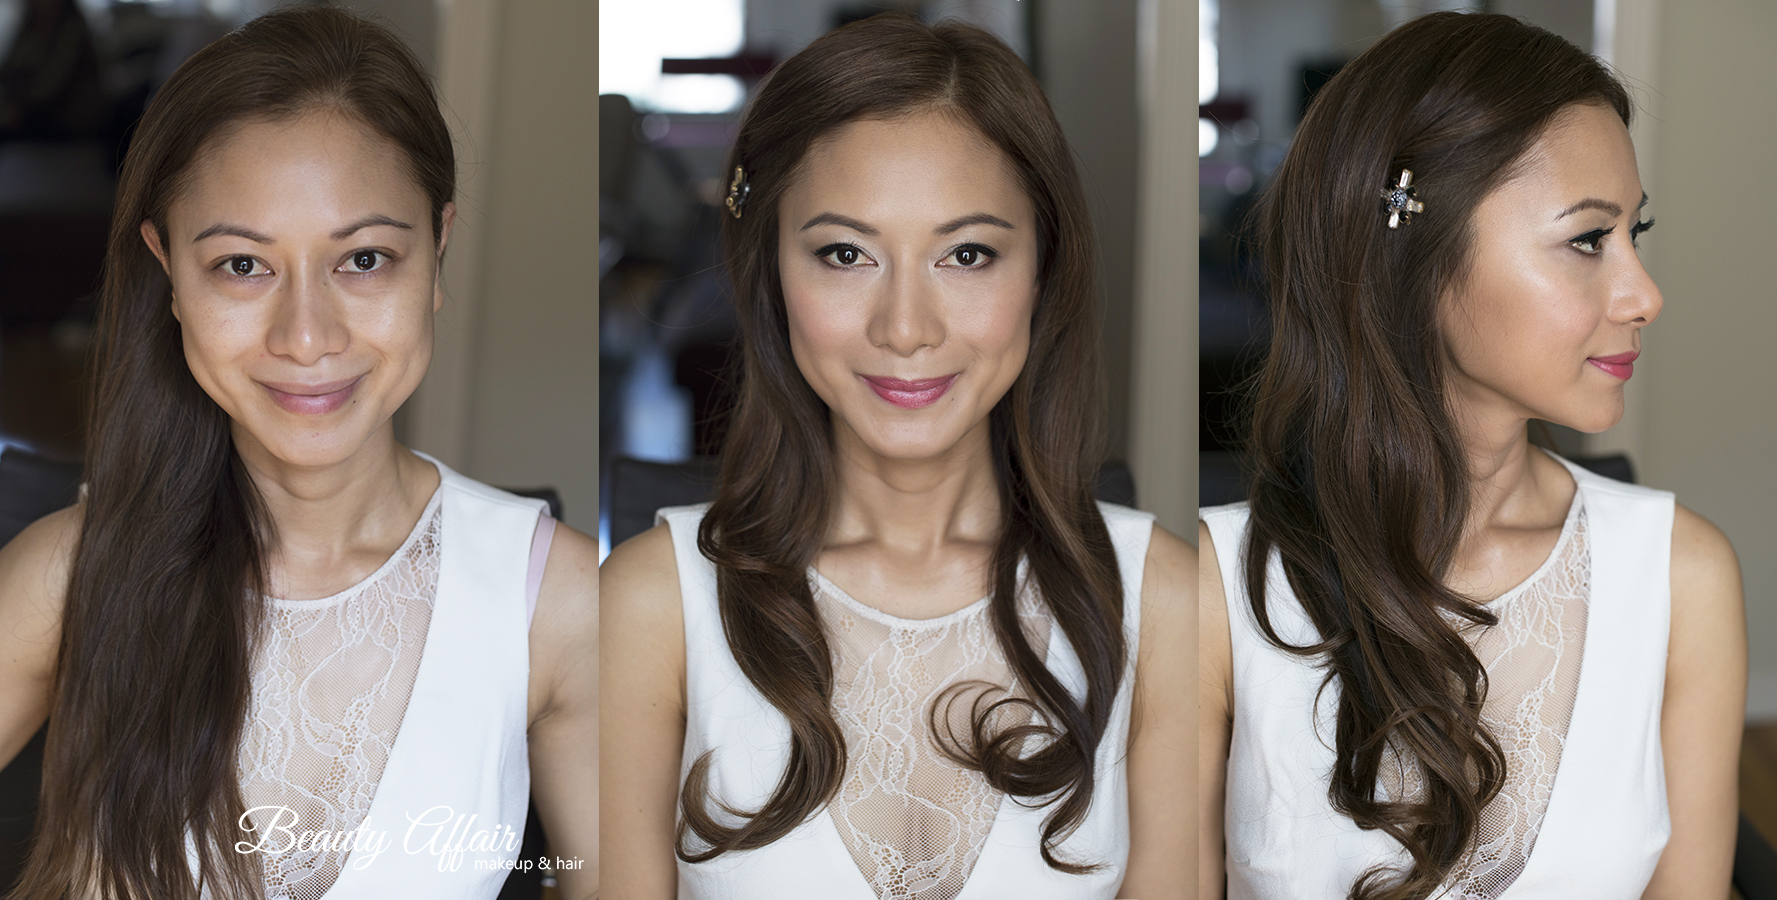 Glowing asian bridal makeup and hairstyle big waves by Agne Beauty Affair Los Angeles Beauty.jpg